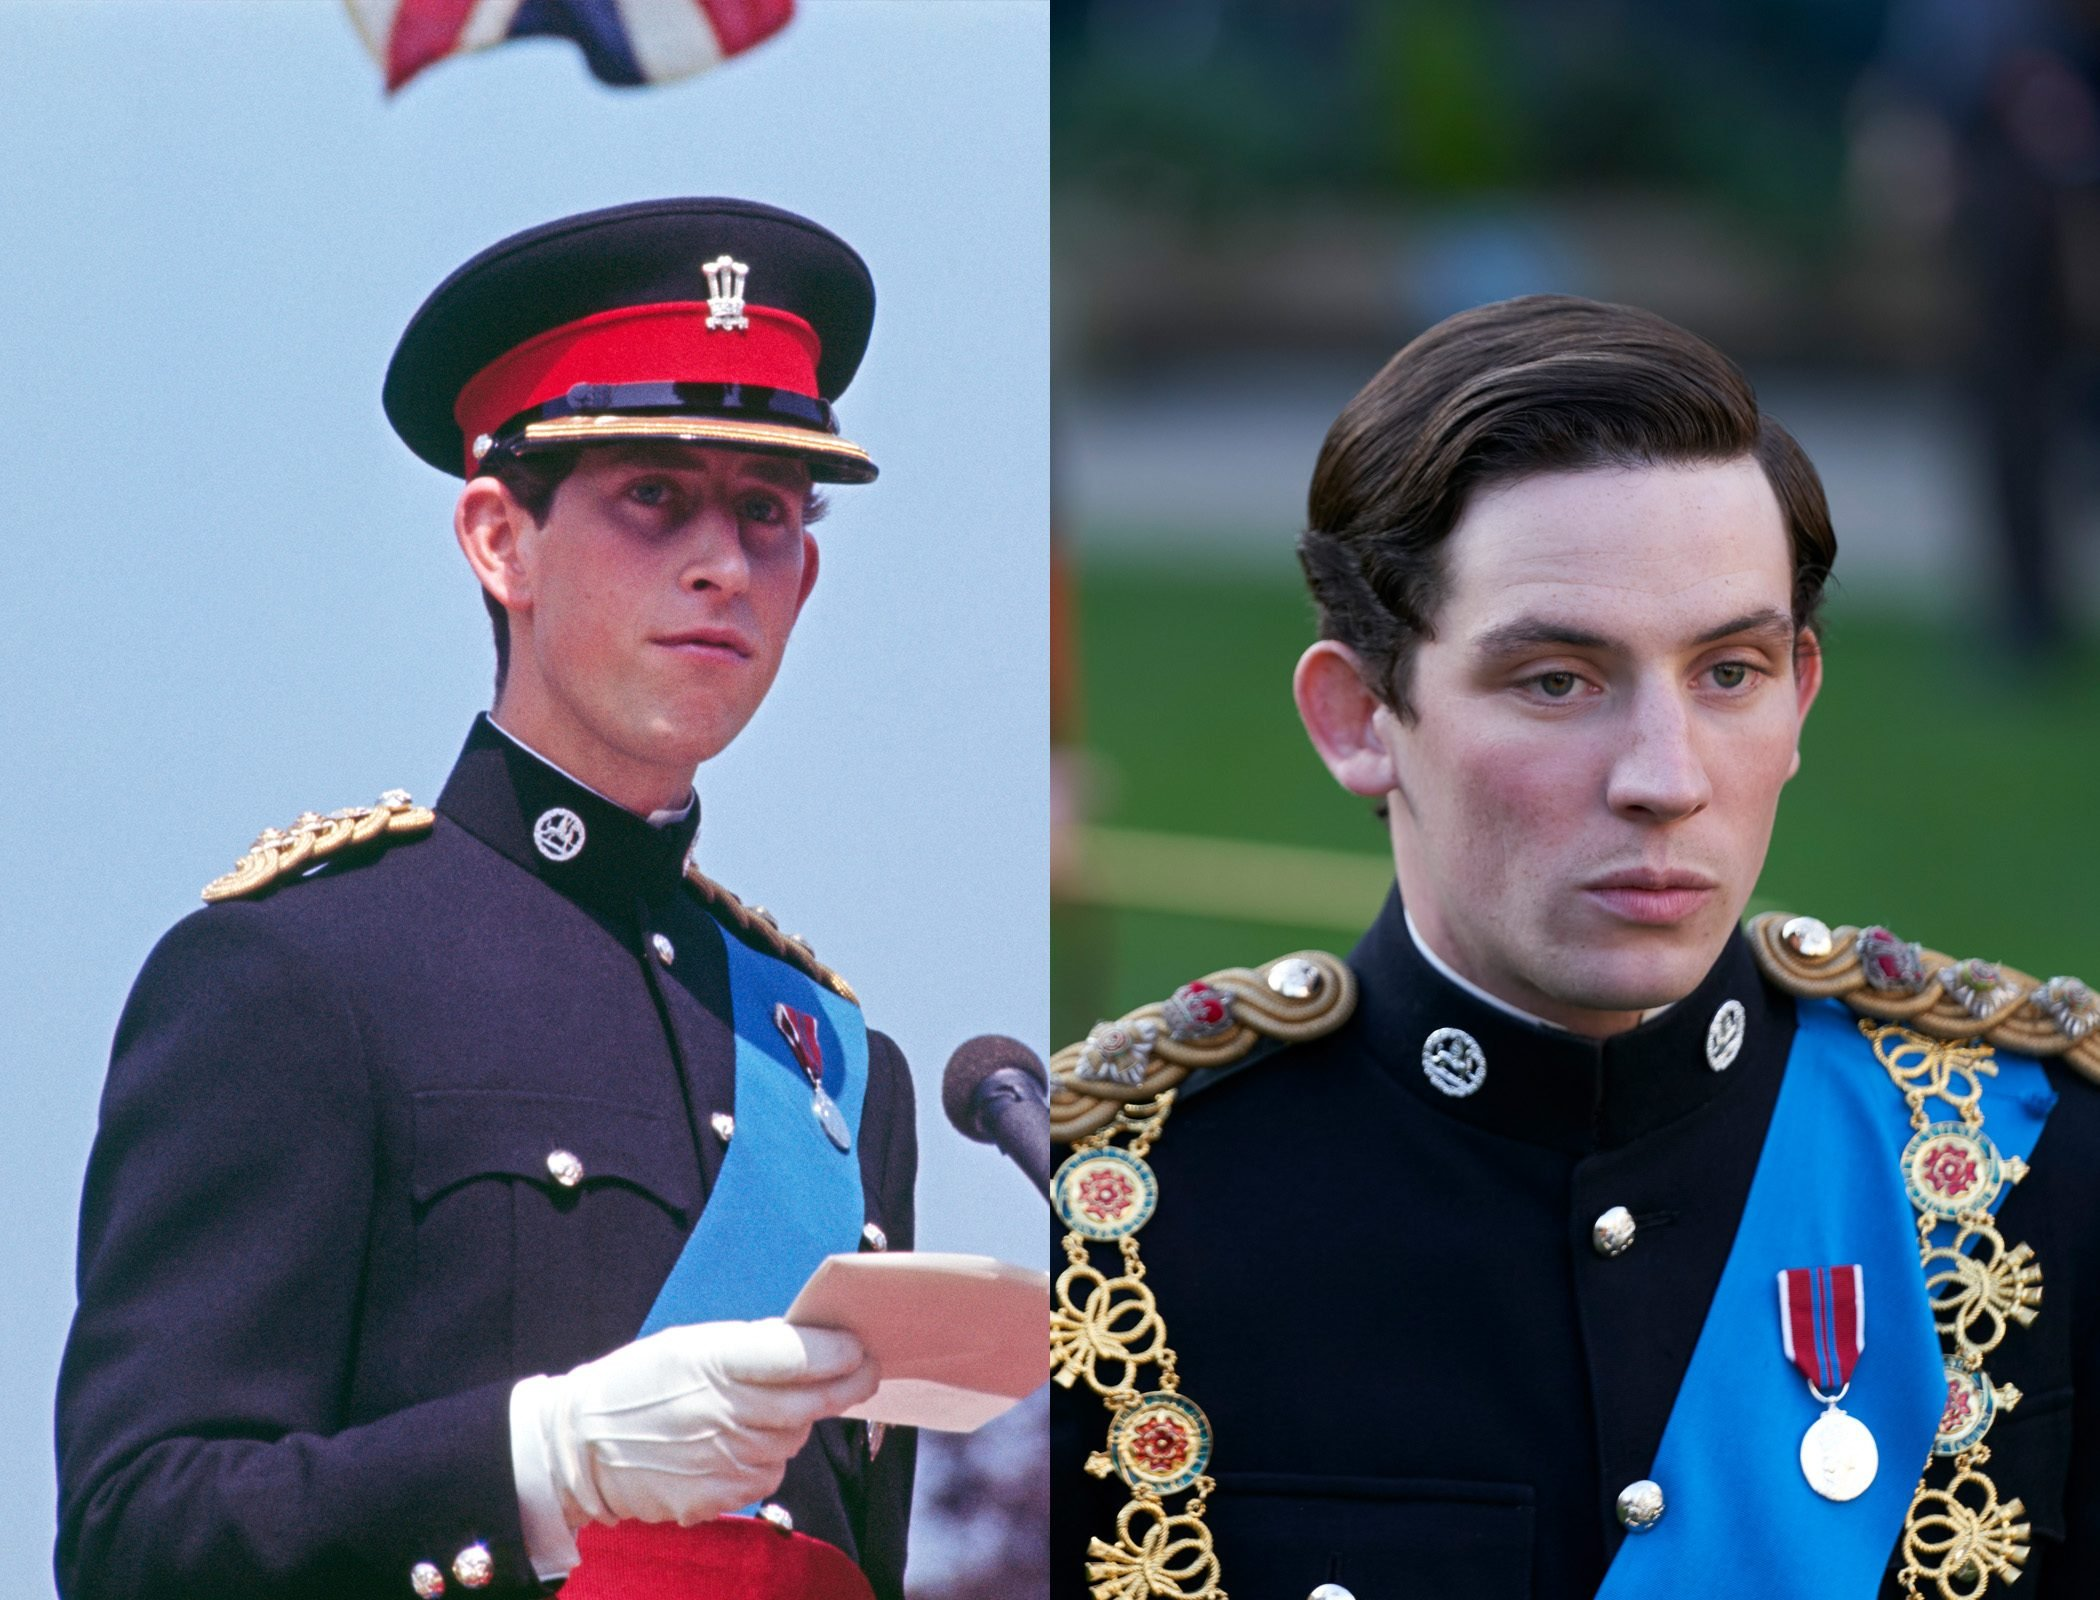 Prince Charles as a young man, as played by Josh O'Connor